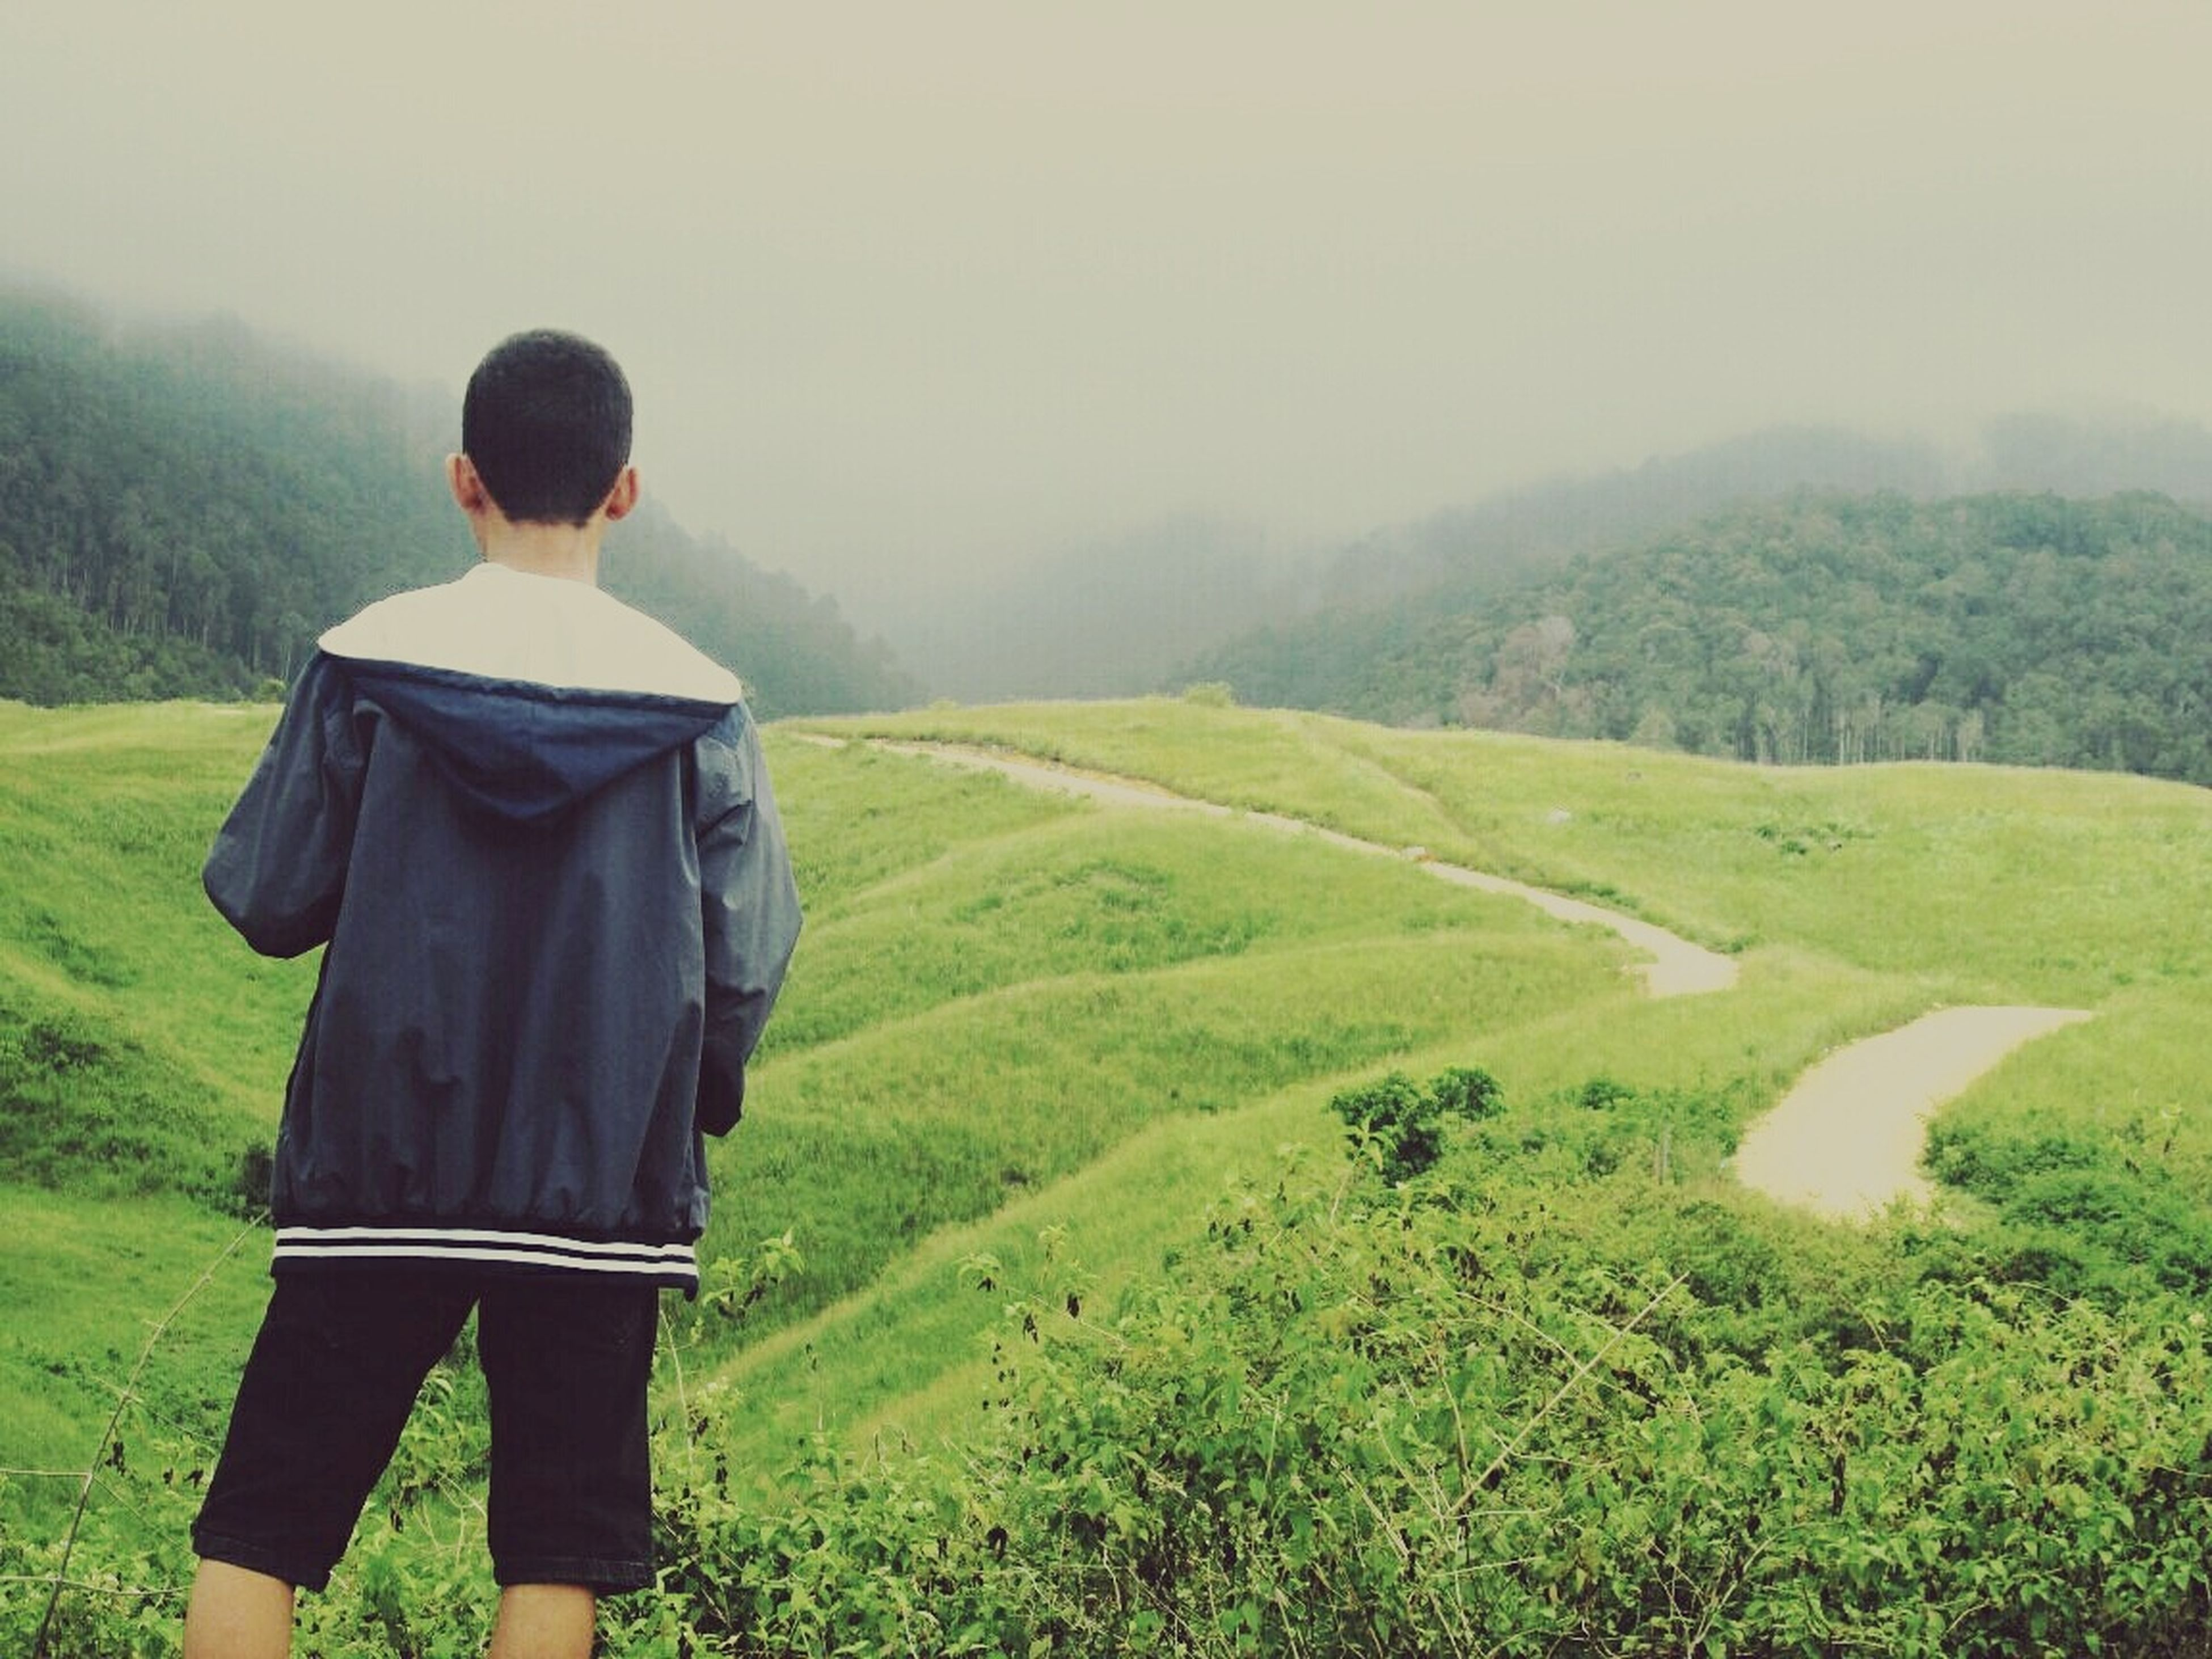 landscape, mountain, nature, real people, rear view, field, tree, green color, scenics, casual clothing, fog, one person, outdoors, day, beauty in nature, lifestyles, men, grass, sky, people